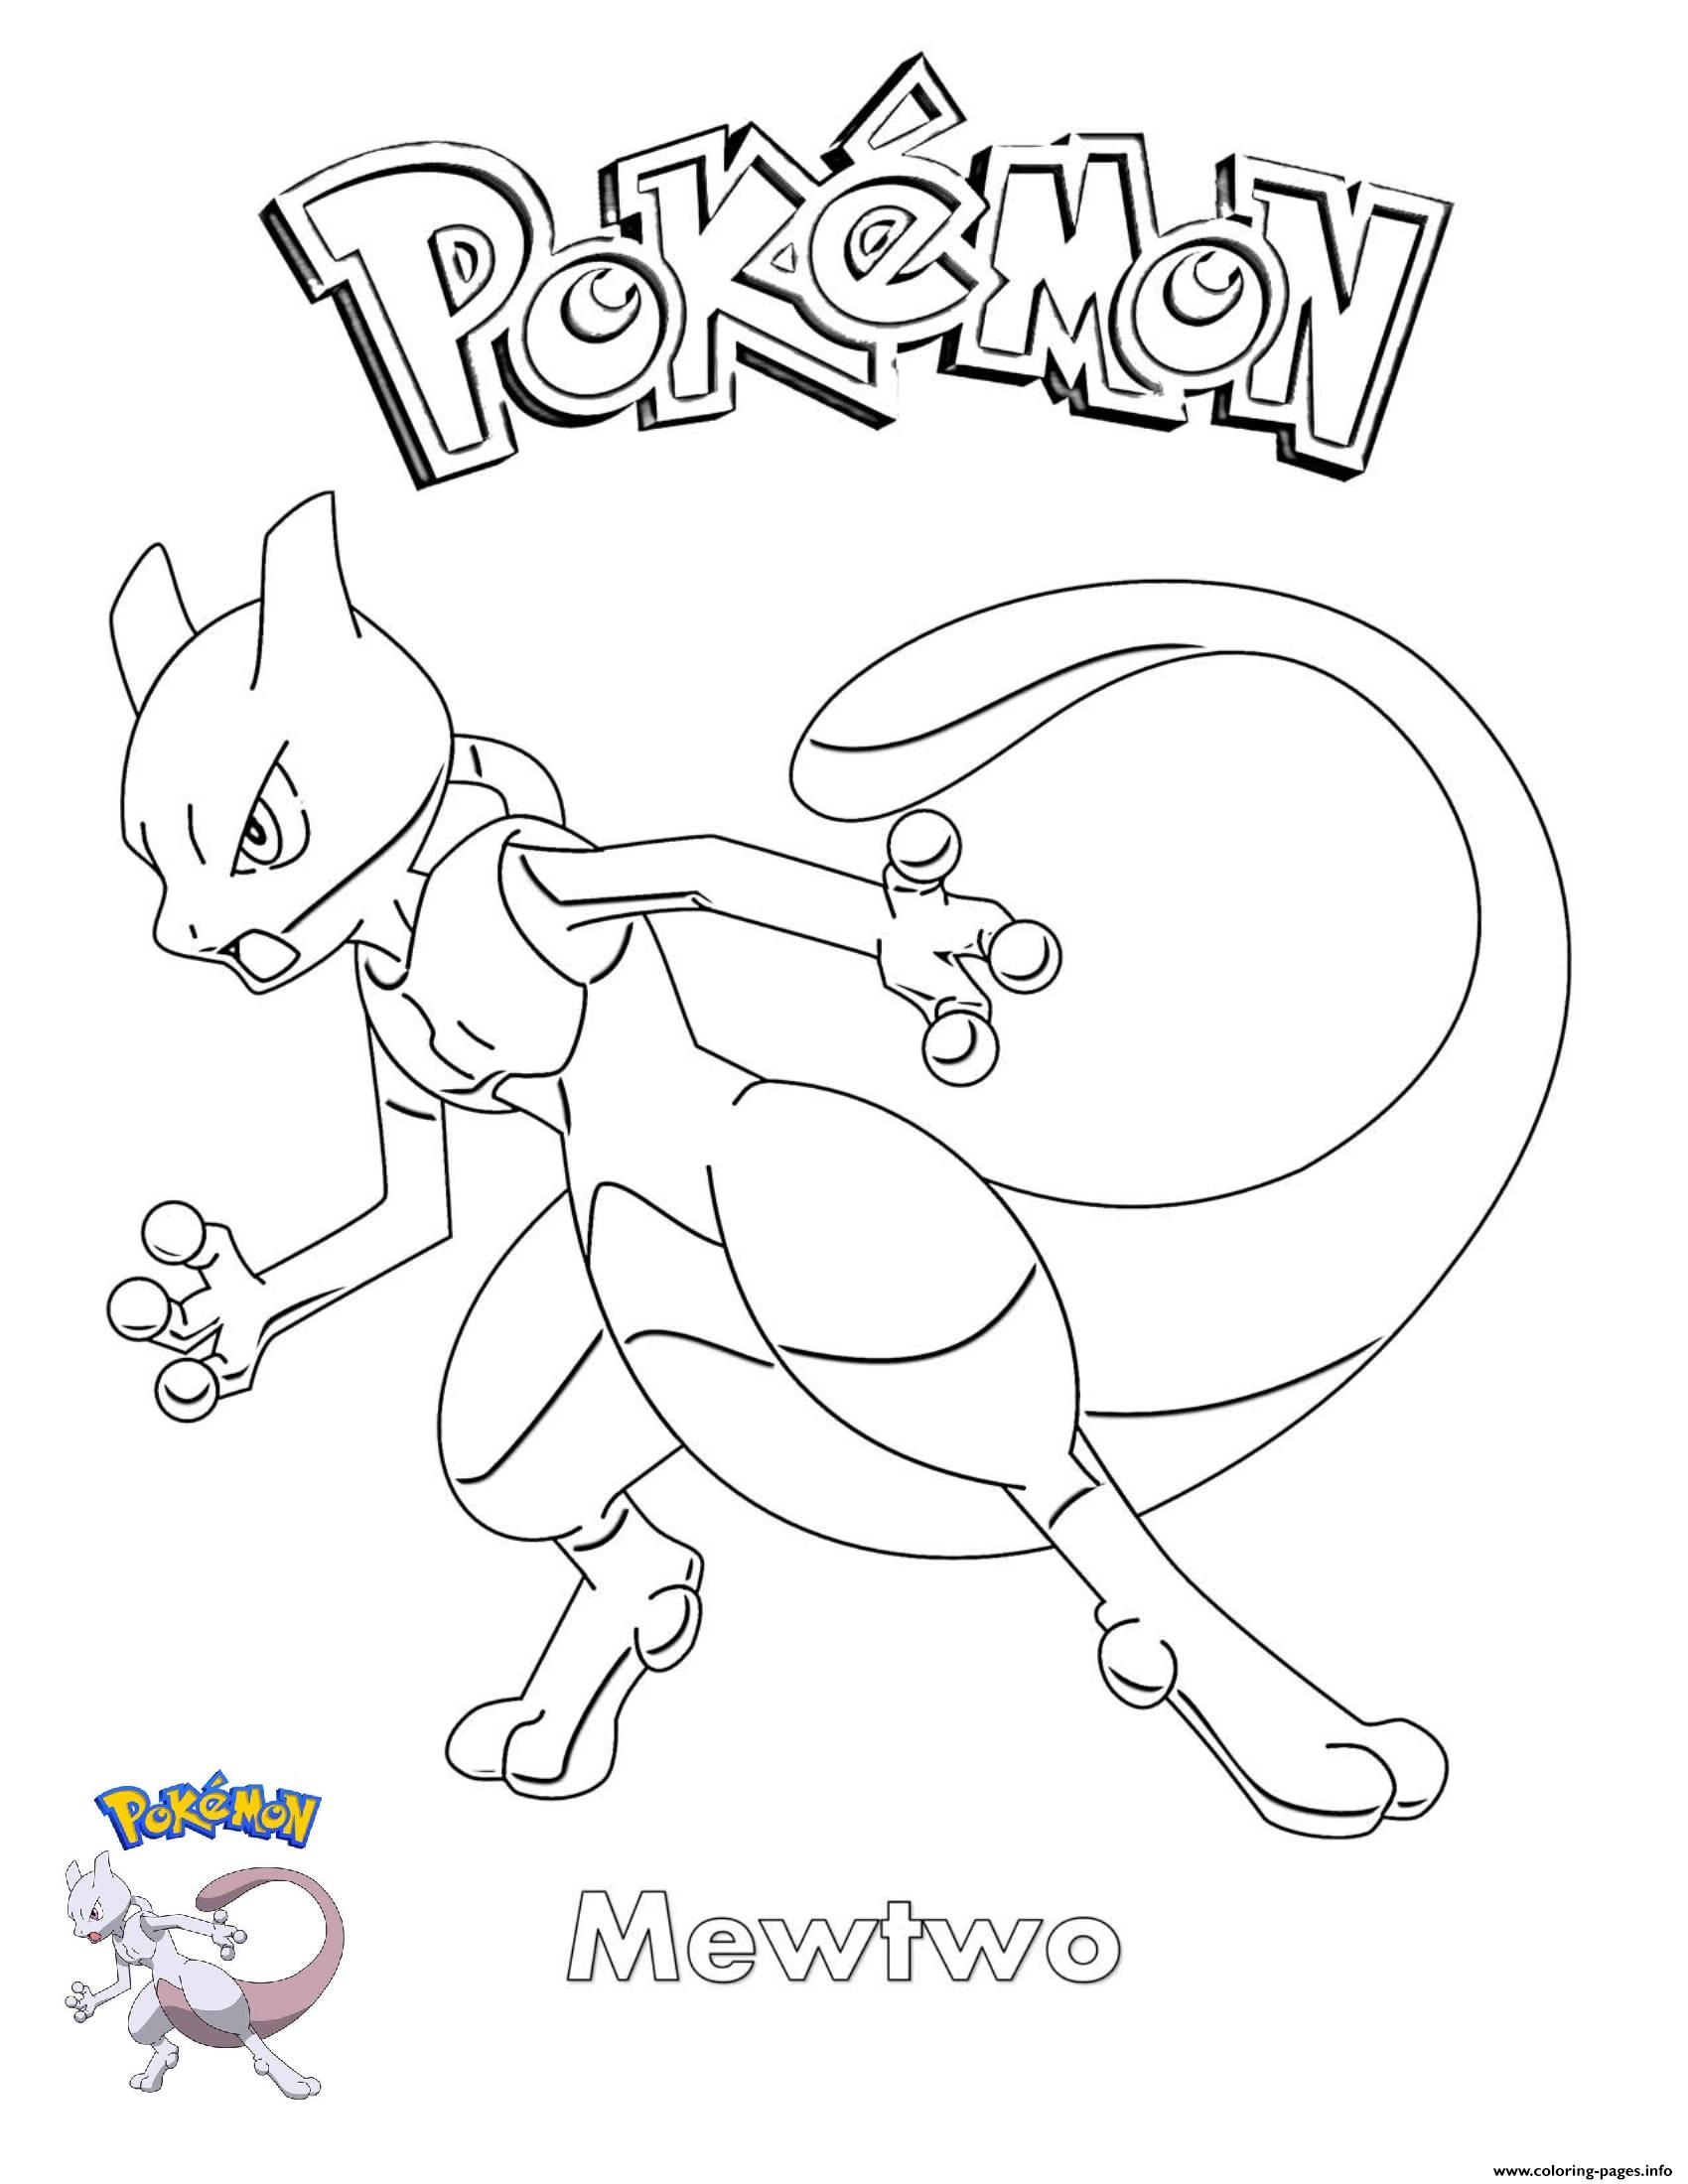 Mewtwo Pokemon coloring pages